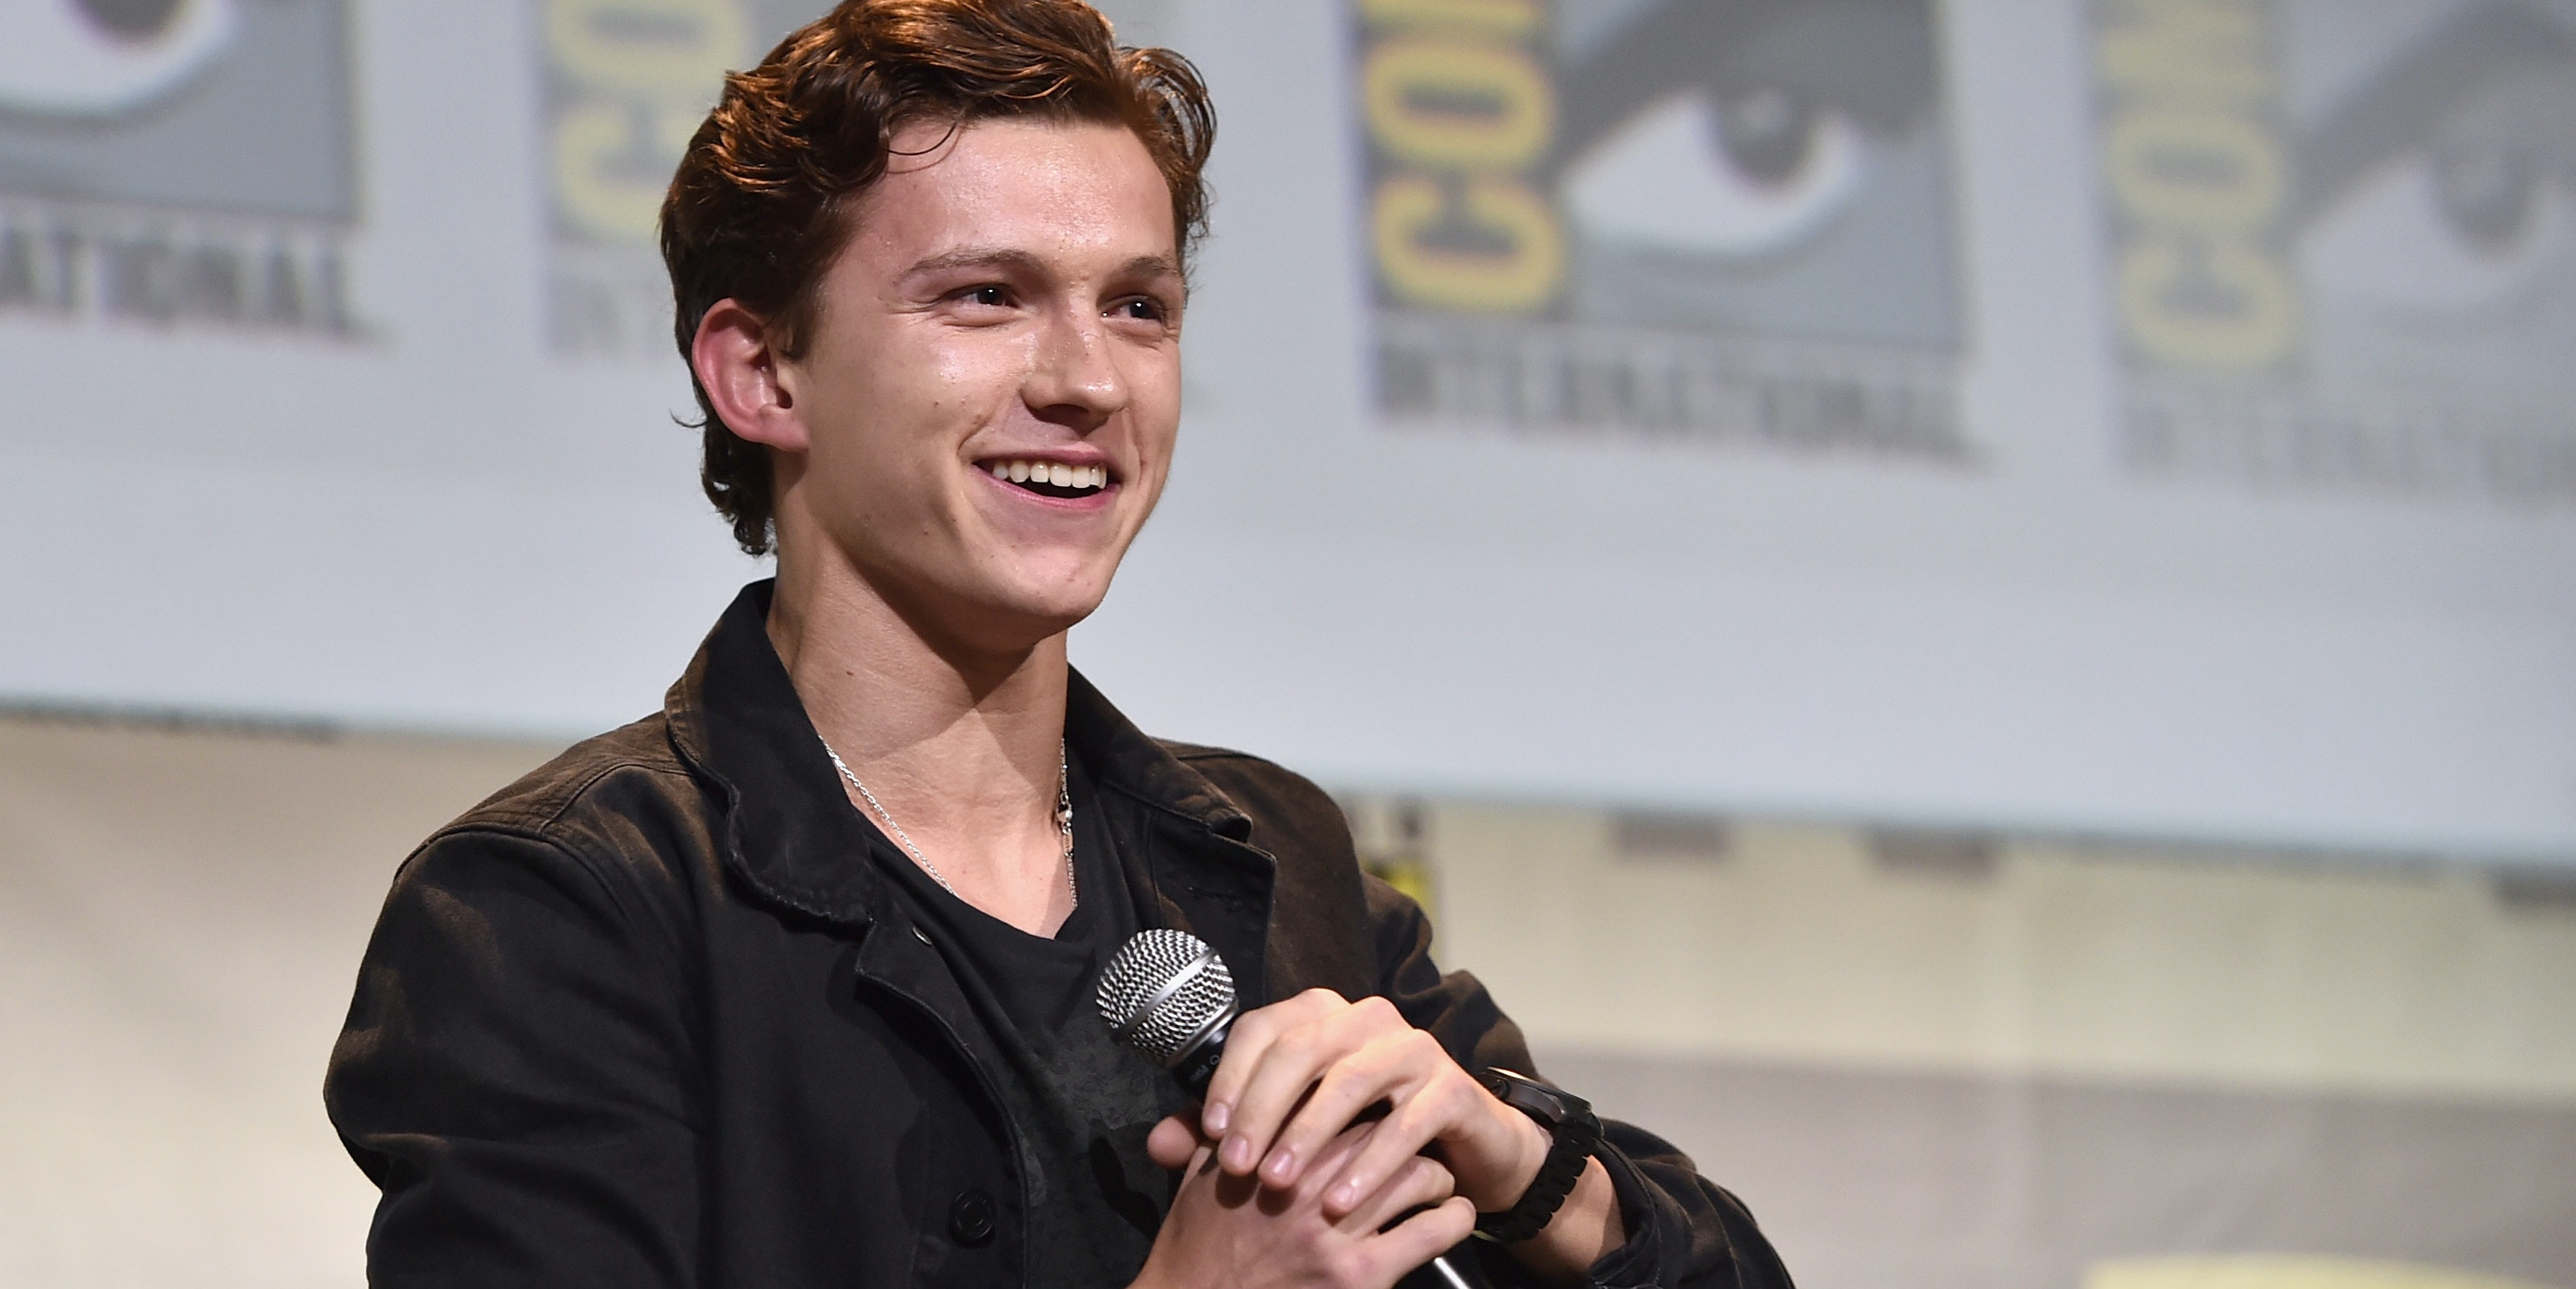 """SAN DIEGO, CA - JULY 23:  Actor Tom Holland from Marvel Studios' 'Spider-Man: Homecoming"""" attends the San Diego Comic-Con International 2016 Marvel Panel in Hall H on July 23, 2016 in San Diego, California. ©Marvel Studios 2016. ©2016 CTMG. All Rights Reserved.  (Photo by Alberto E. Rodriguez/Getty Images for Disney)"""